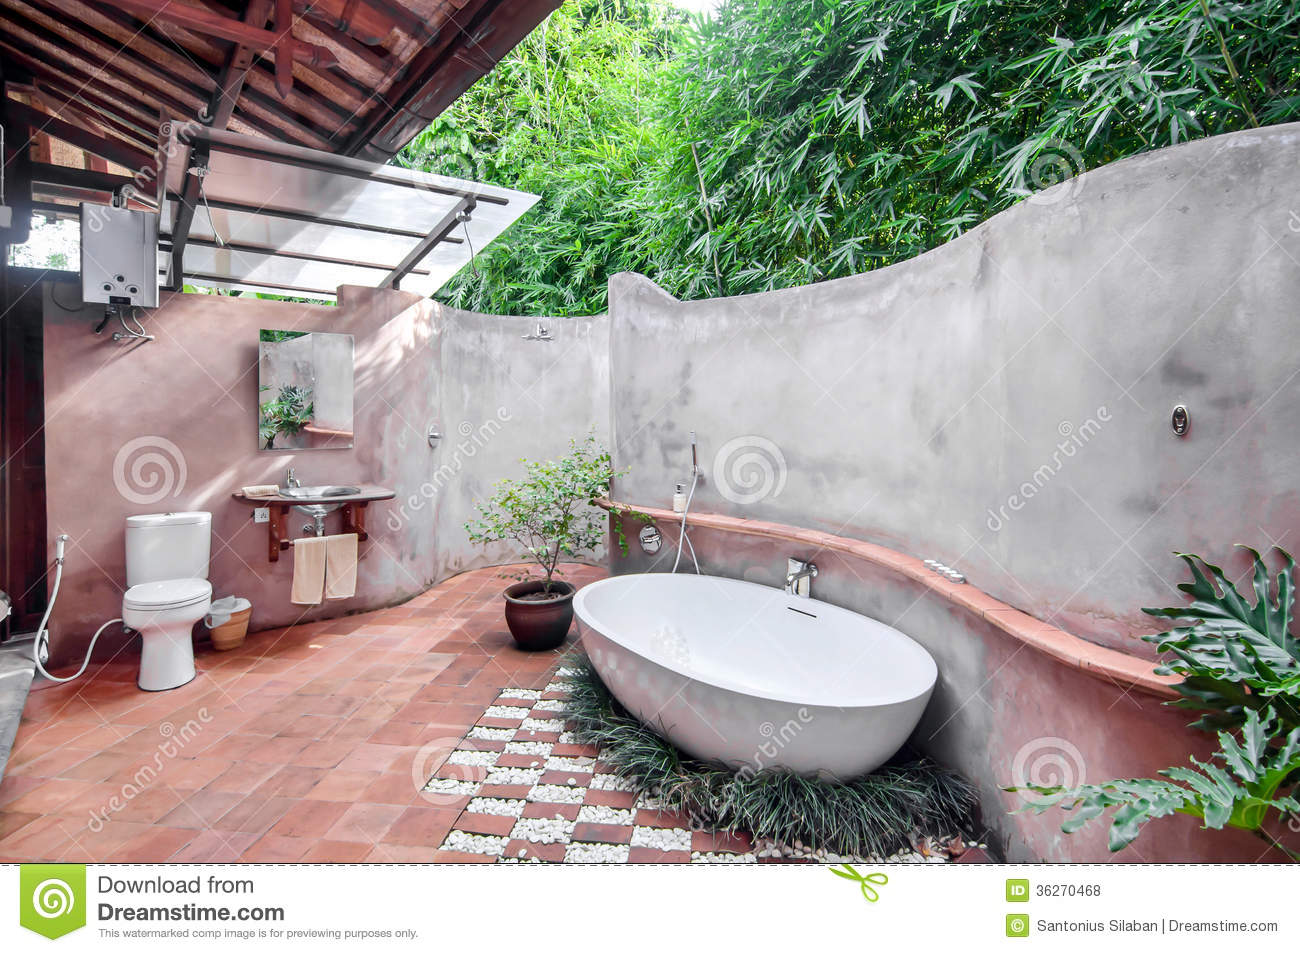 outdoor best bathroom bathrooms images capella in bath one s outside the pinterest lotus baths on apaiser featured obeysette of